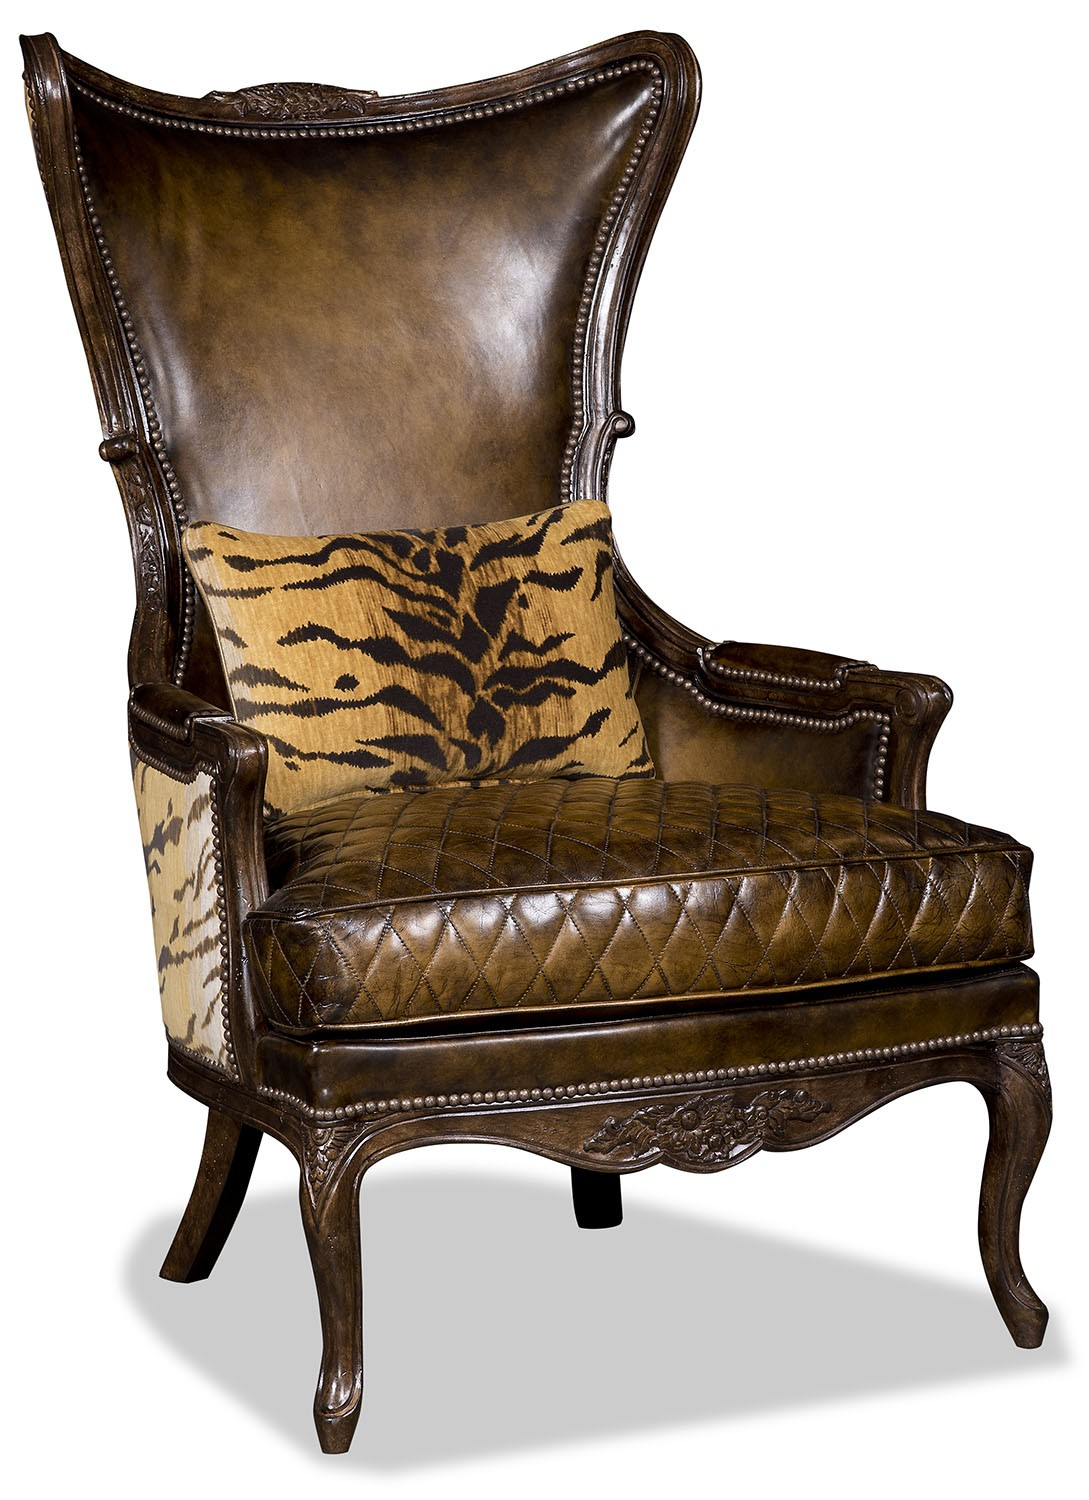 Elegant Leather and Tiger Print Arm Chair